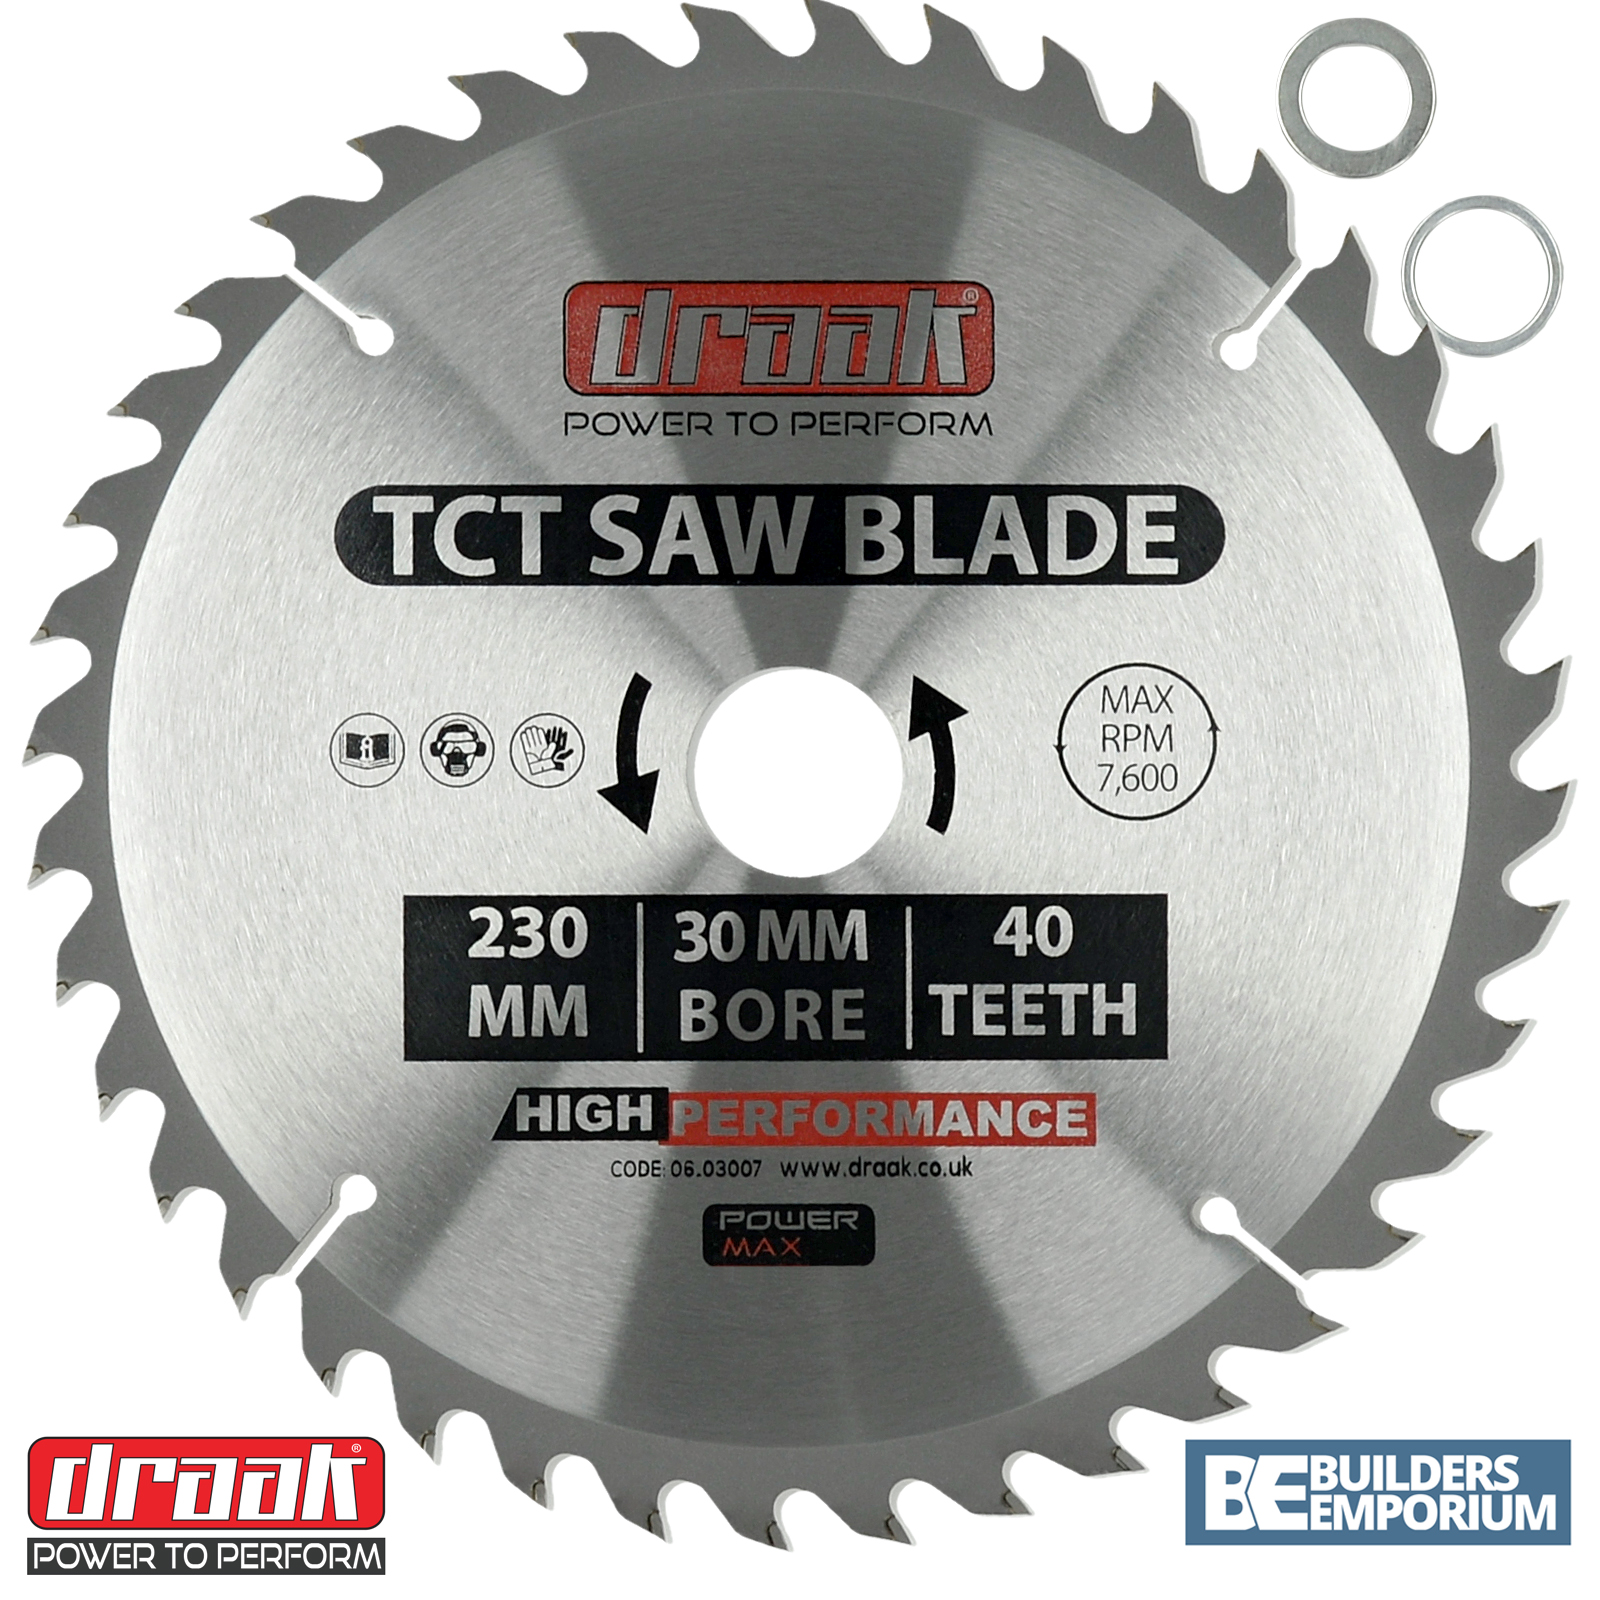 Draak 230mm x 30mm bore 40 tooth tct circular wood saw blade makita sentinel draak 230mm x 30mm bore 40 tooth tct circular wood saw blade makita bosch greentooth Image collections